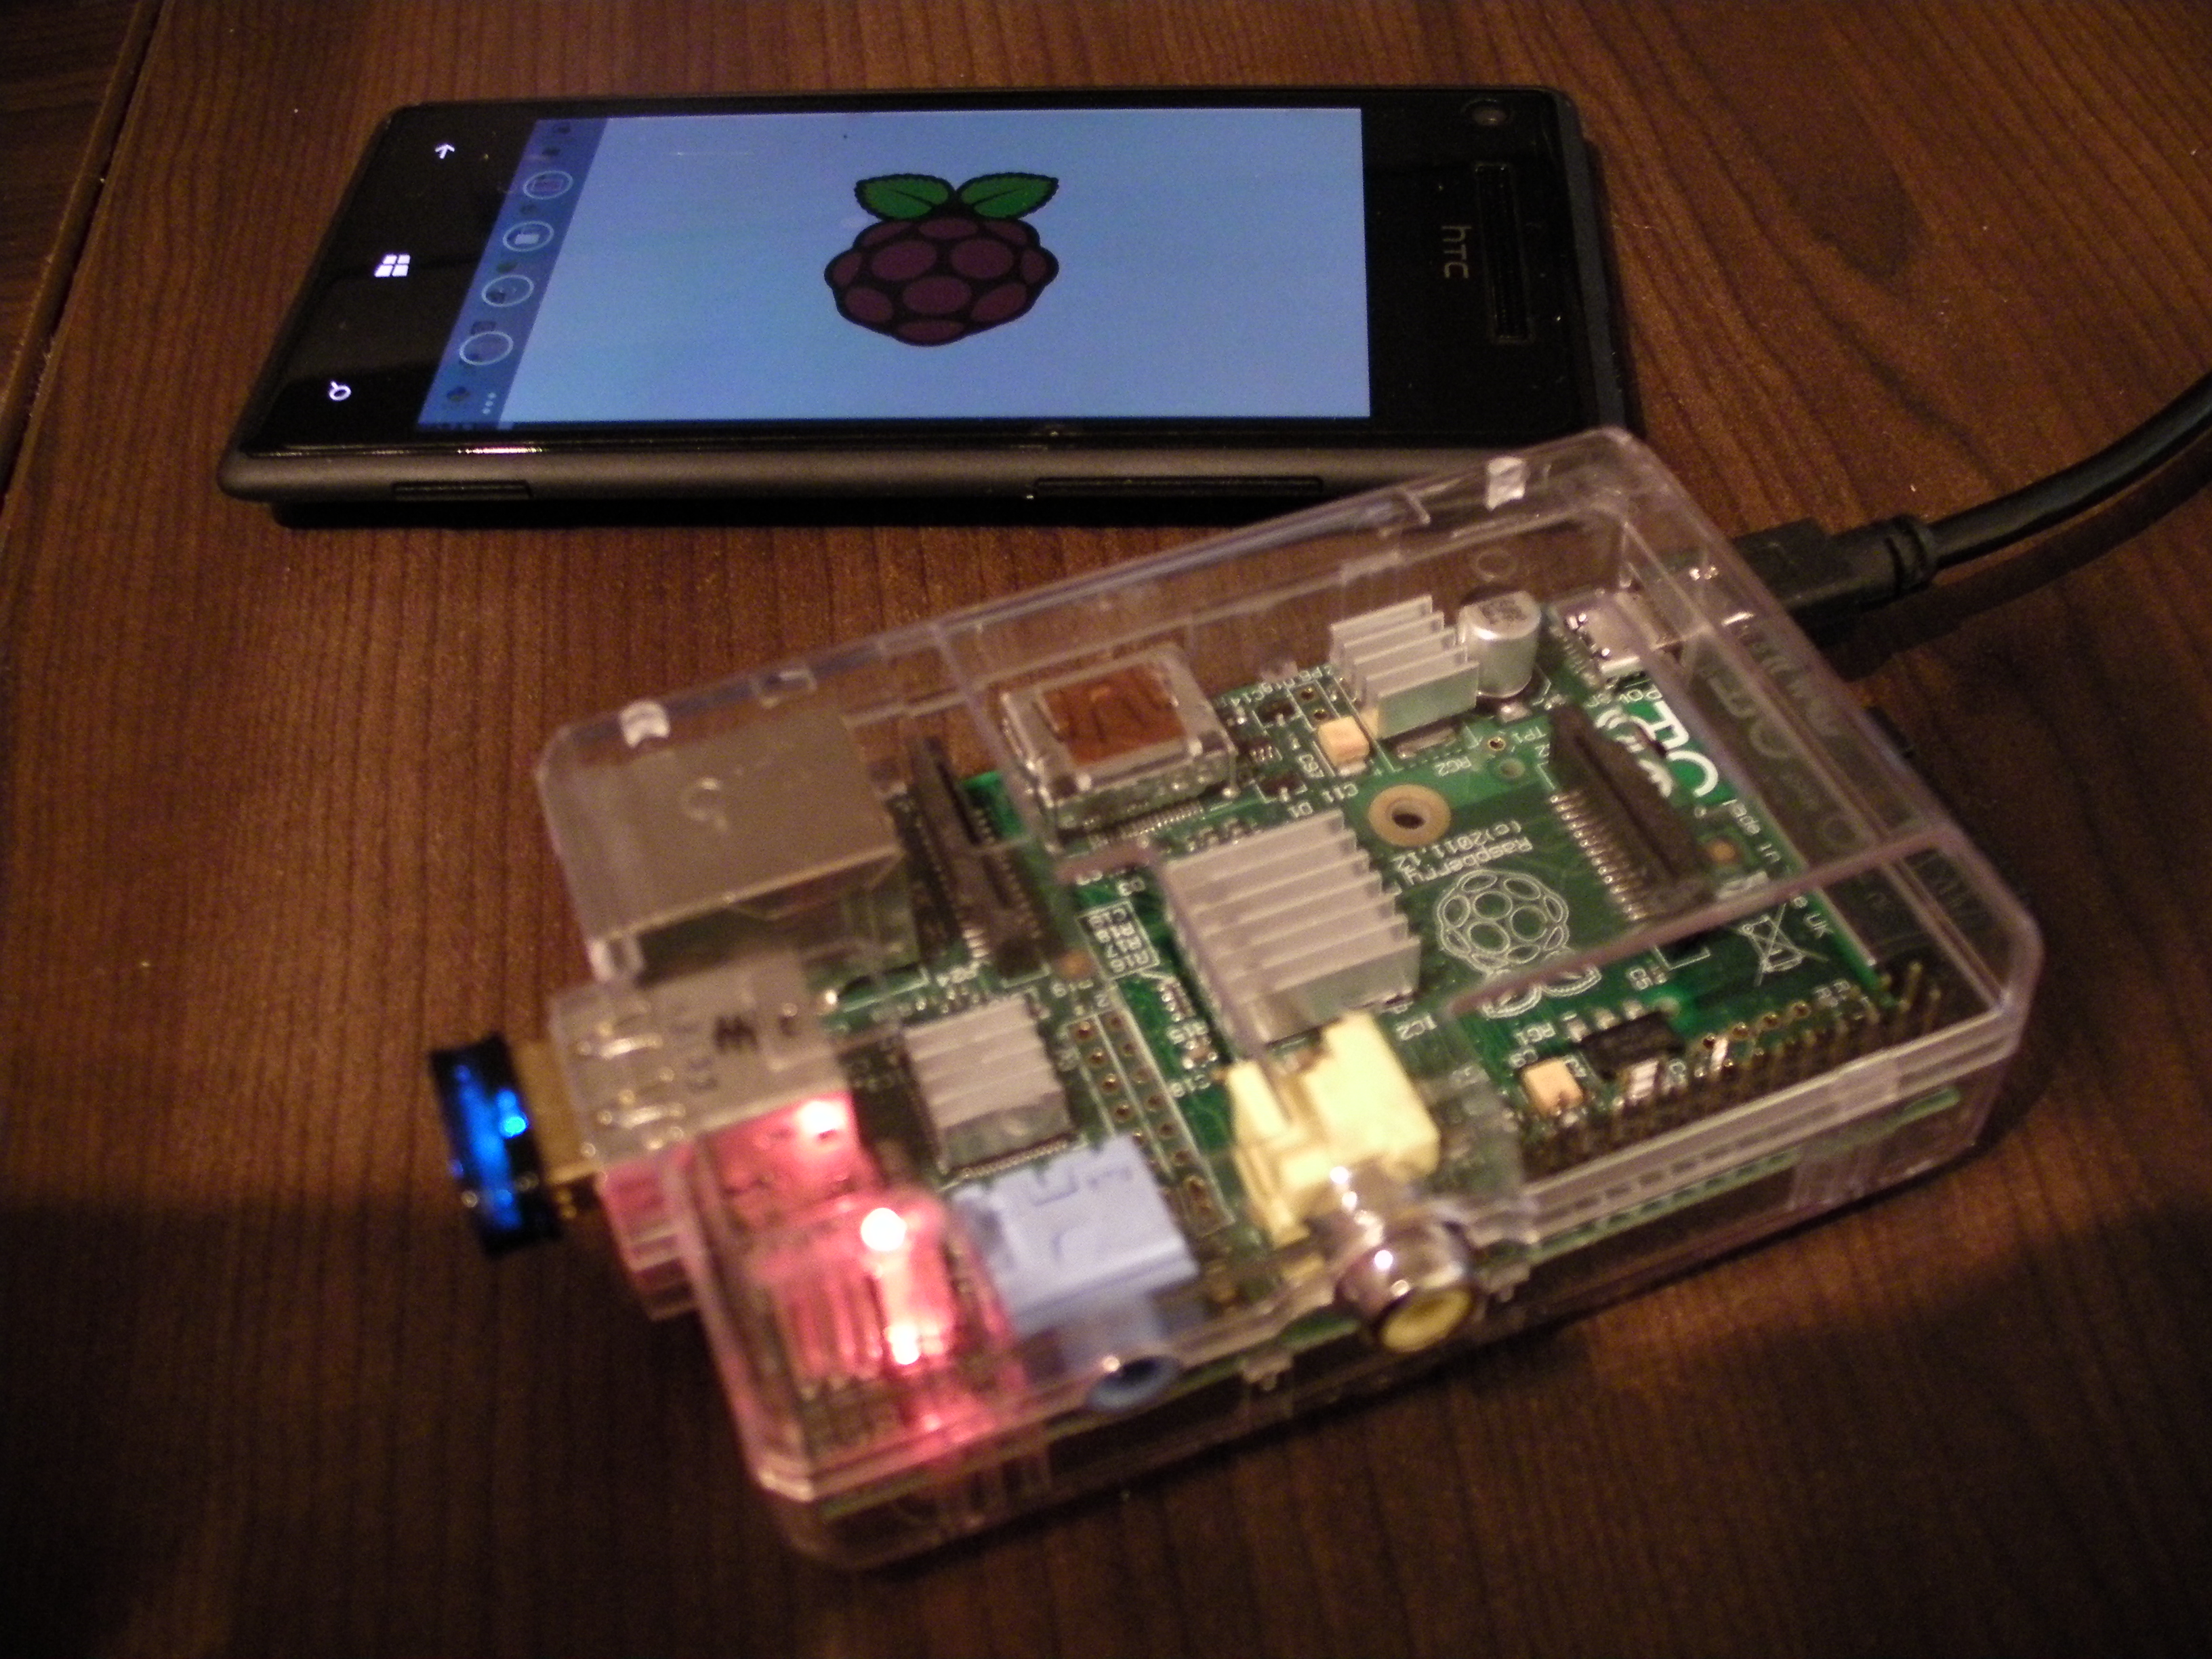 Enabling Monitor Mode & Packet Injection on the Raspberry Pi